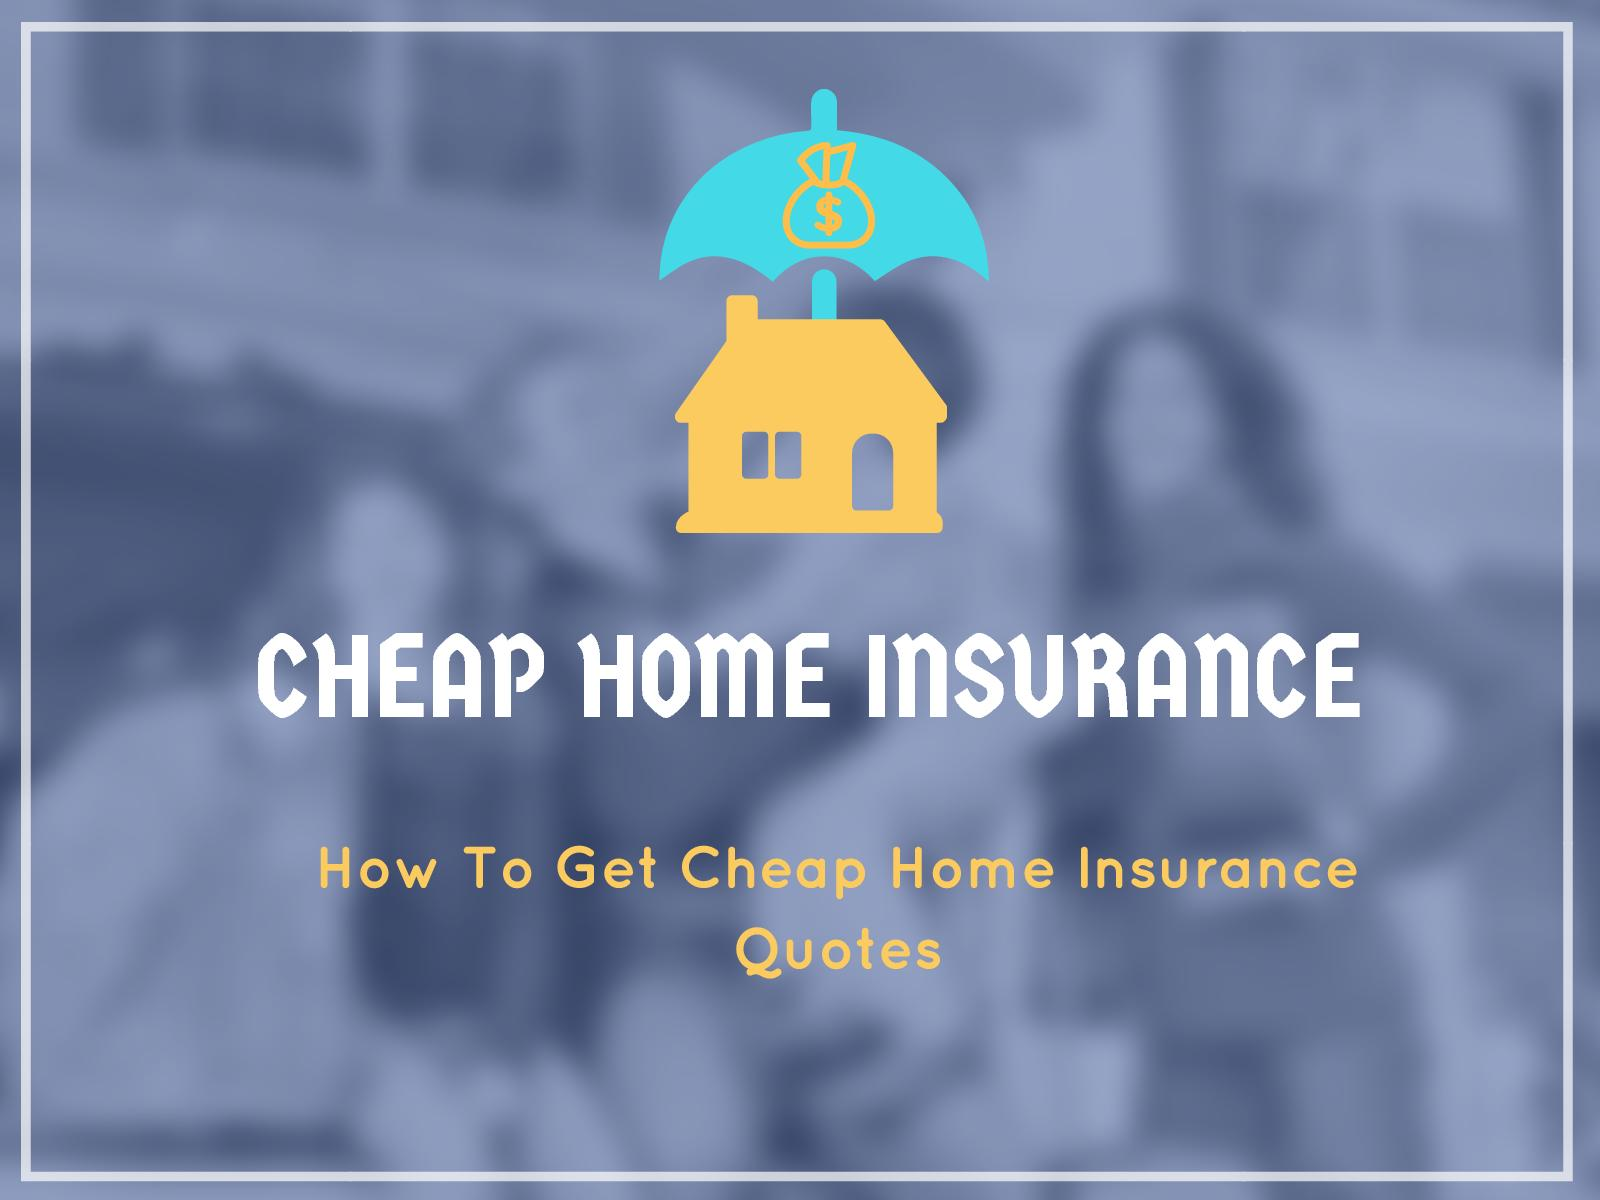 Calaméo - How To Get Cheap Home Insurance Quotes